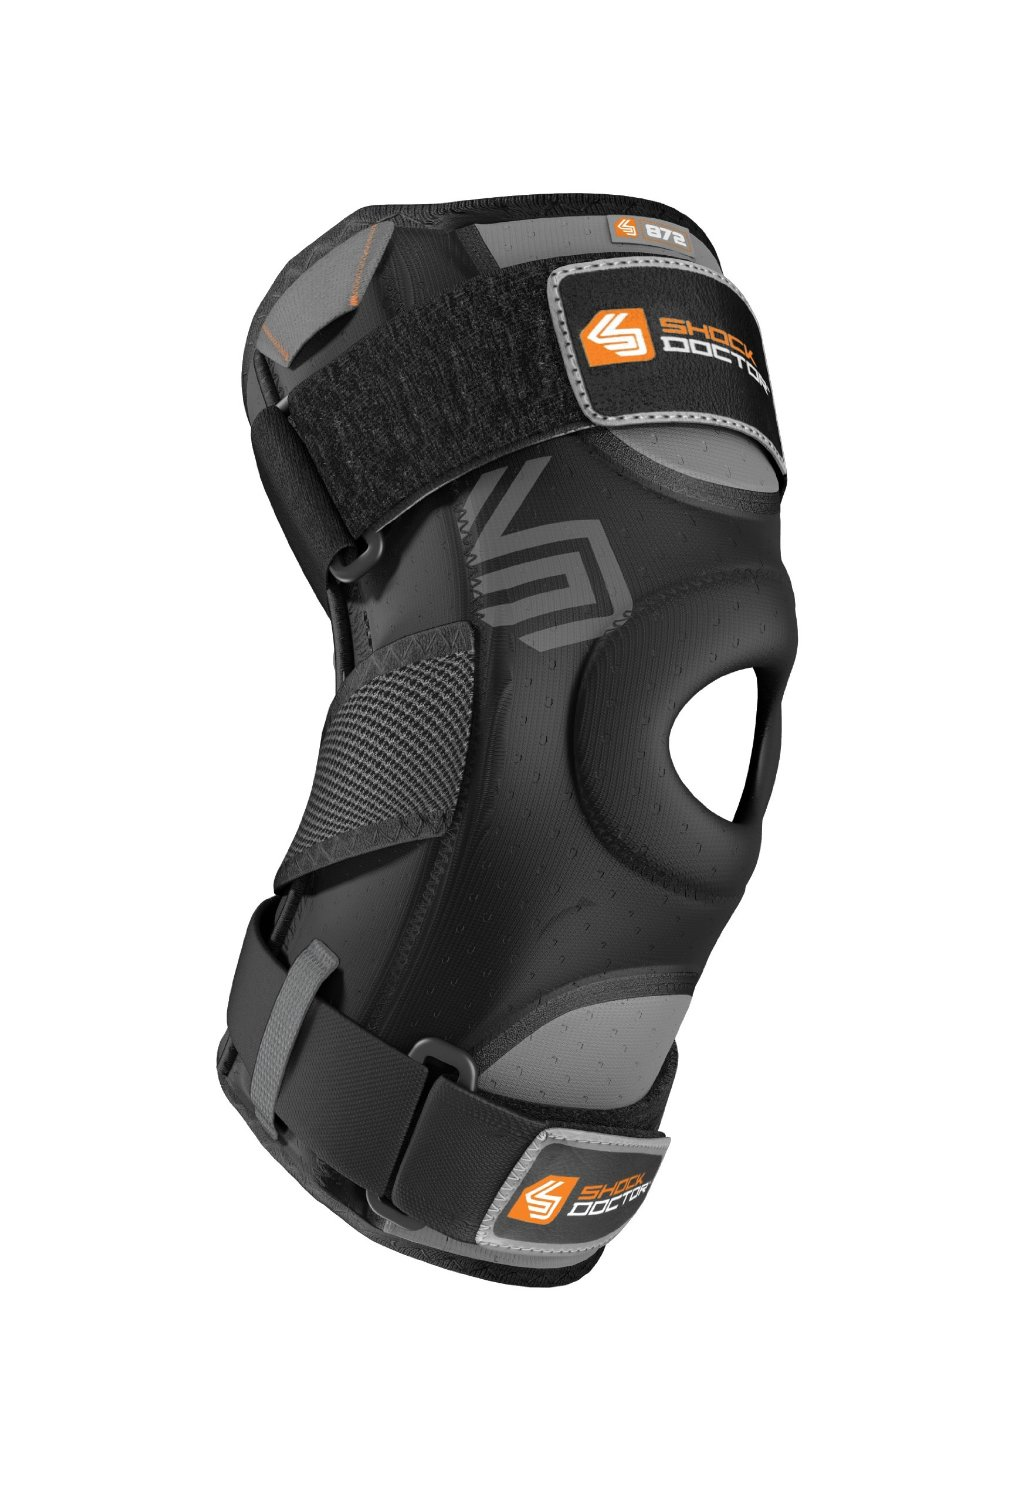 Shock Doctor Knee Support with Dual Hinges